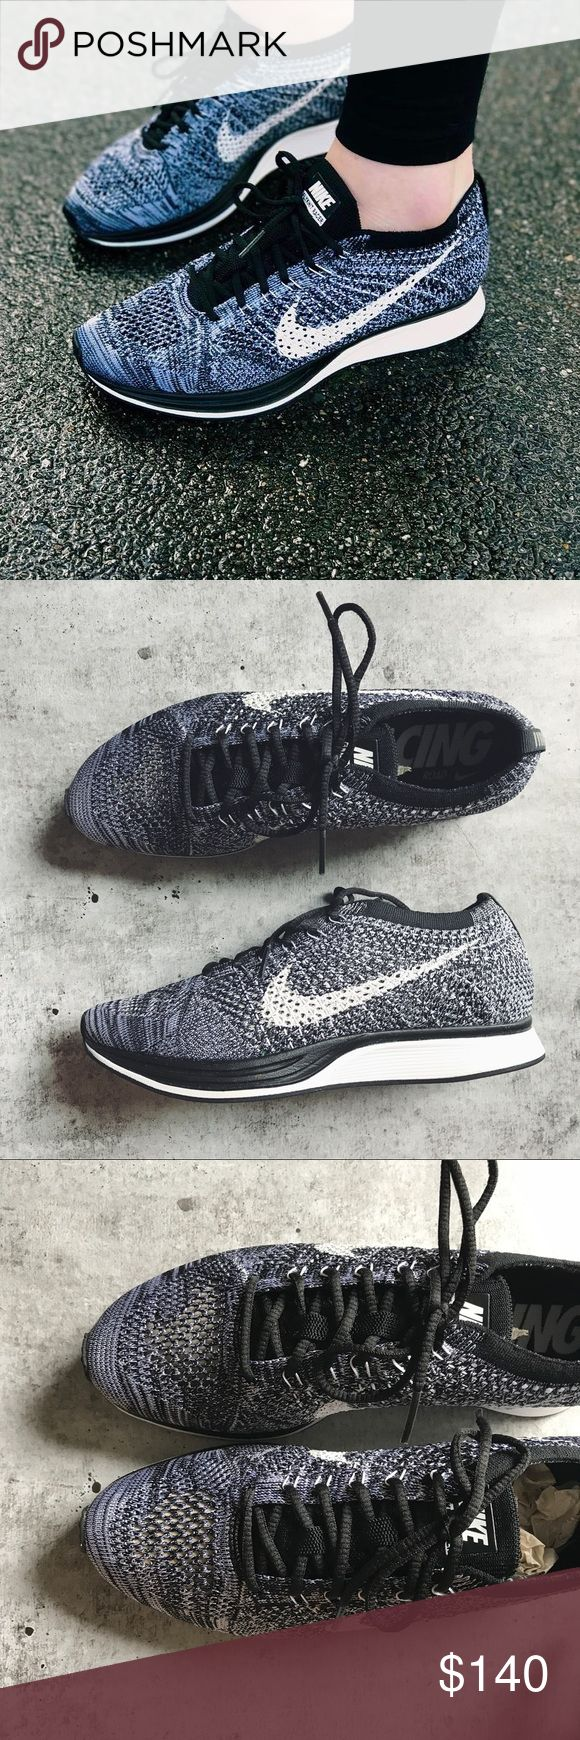 Nike Oreo Flyknit Racer Sneakers •Oreo Flyknit Racer Sneakers  •Unisex shoe, Men's 6= Women's 7.5 Best for narrow-normal width feet.  •New without tags and original box.  •No trades, no holds. Nike Shoes Sneakers